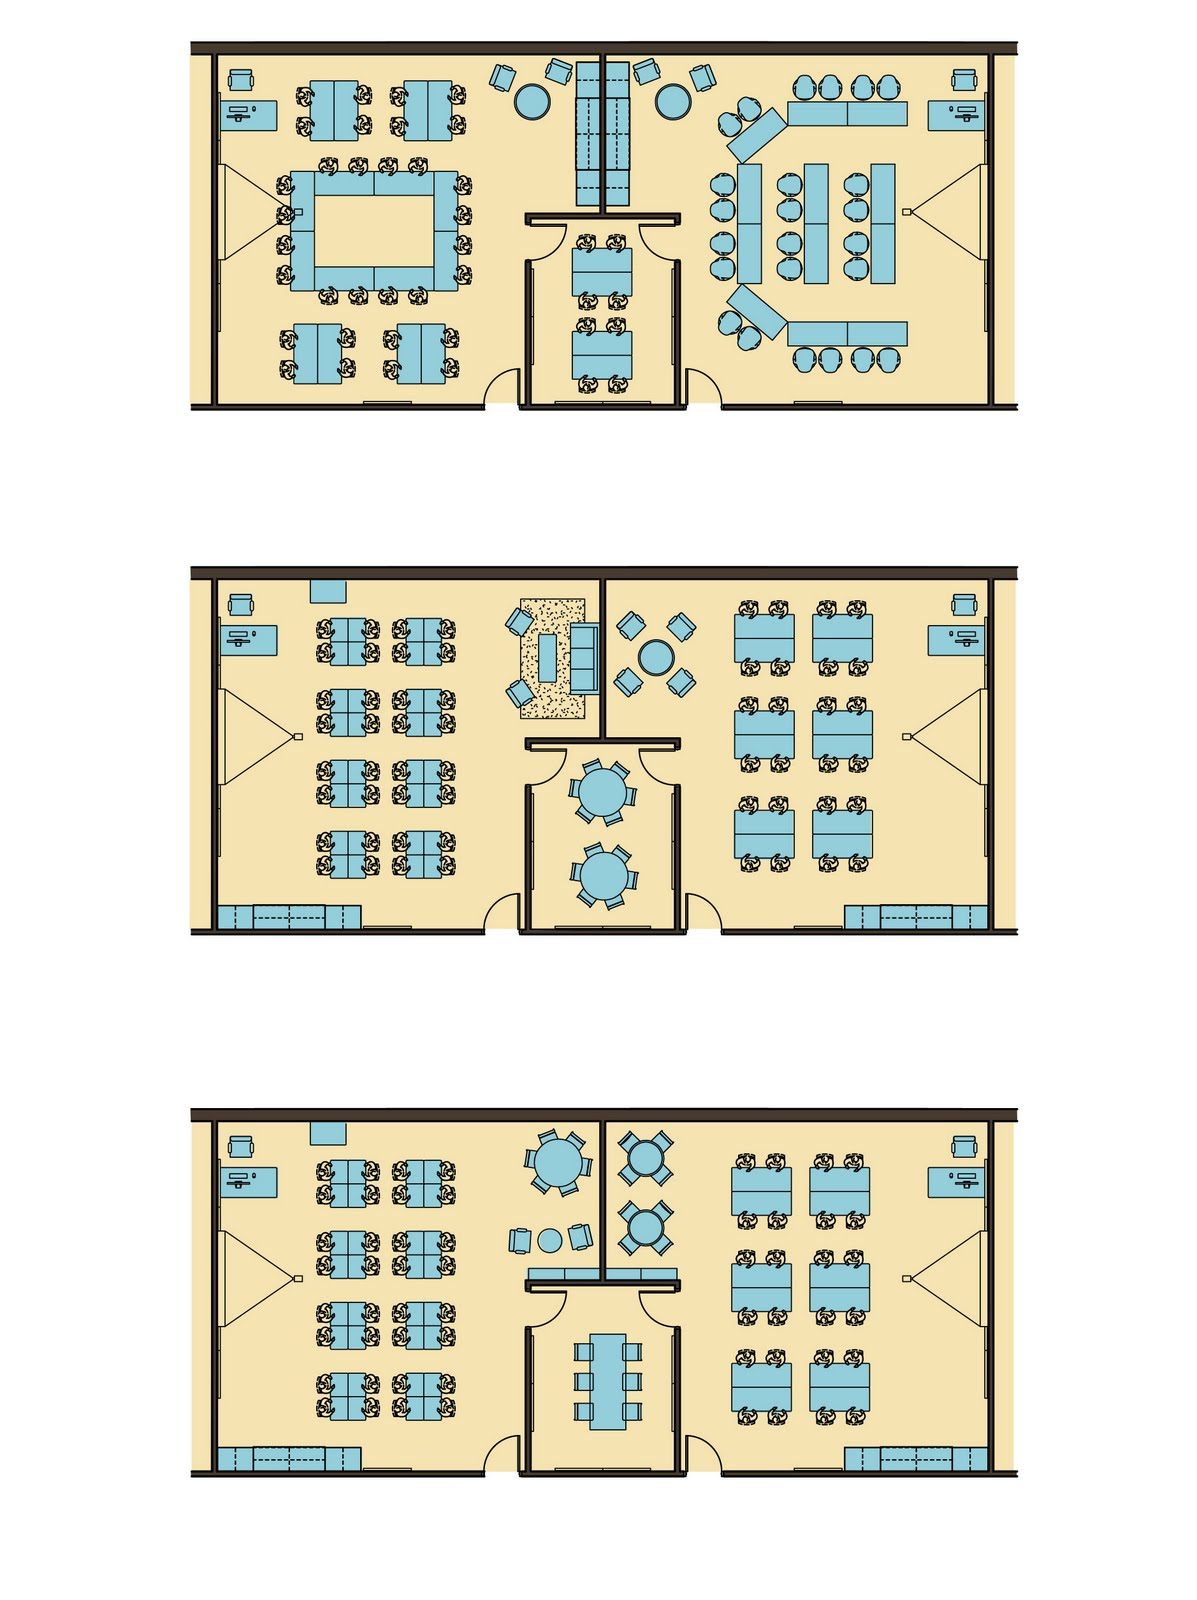 Classroom Design High School ~ Bedford high school classroom layout options